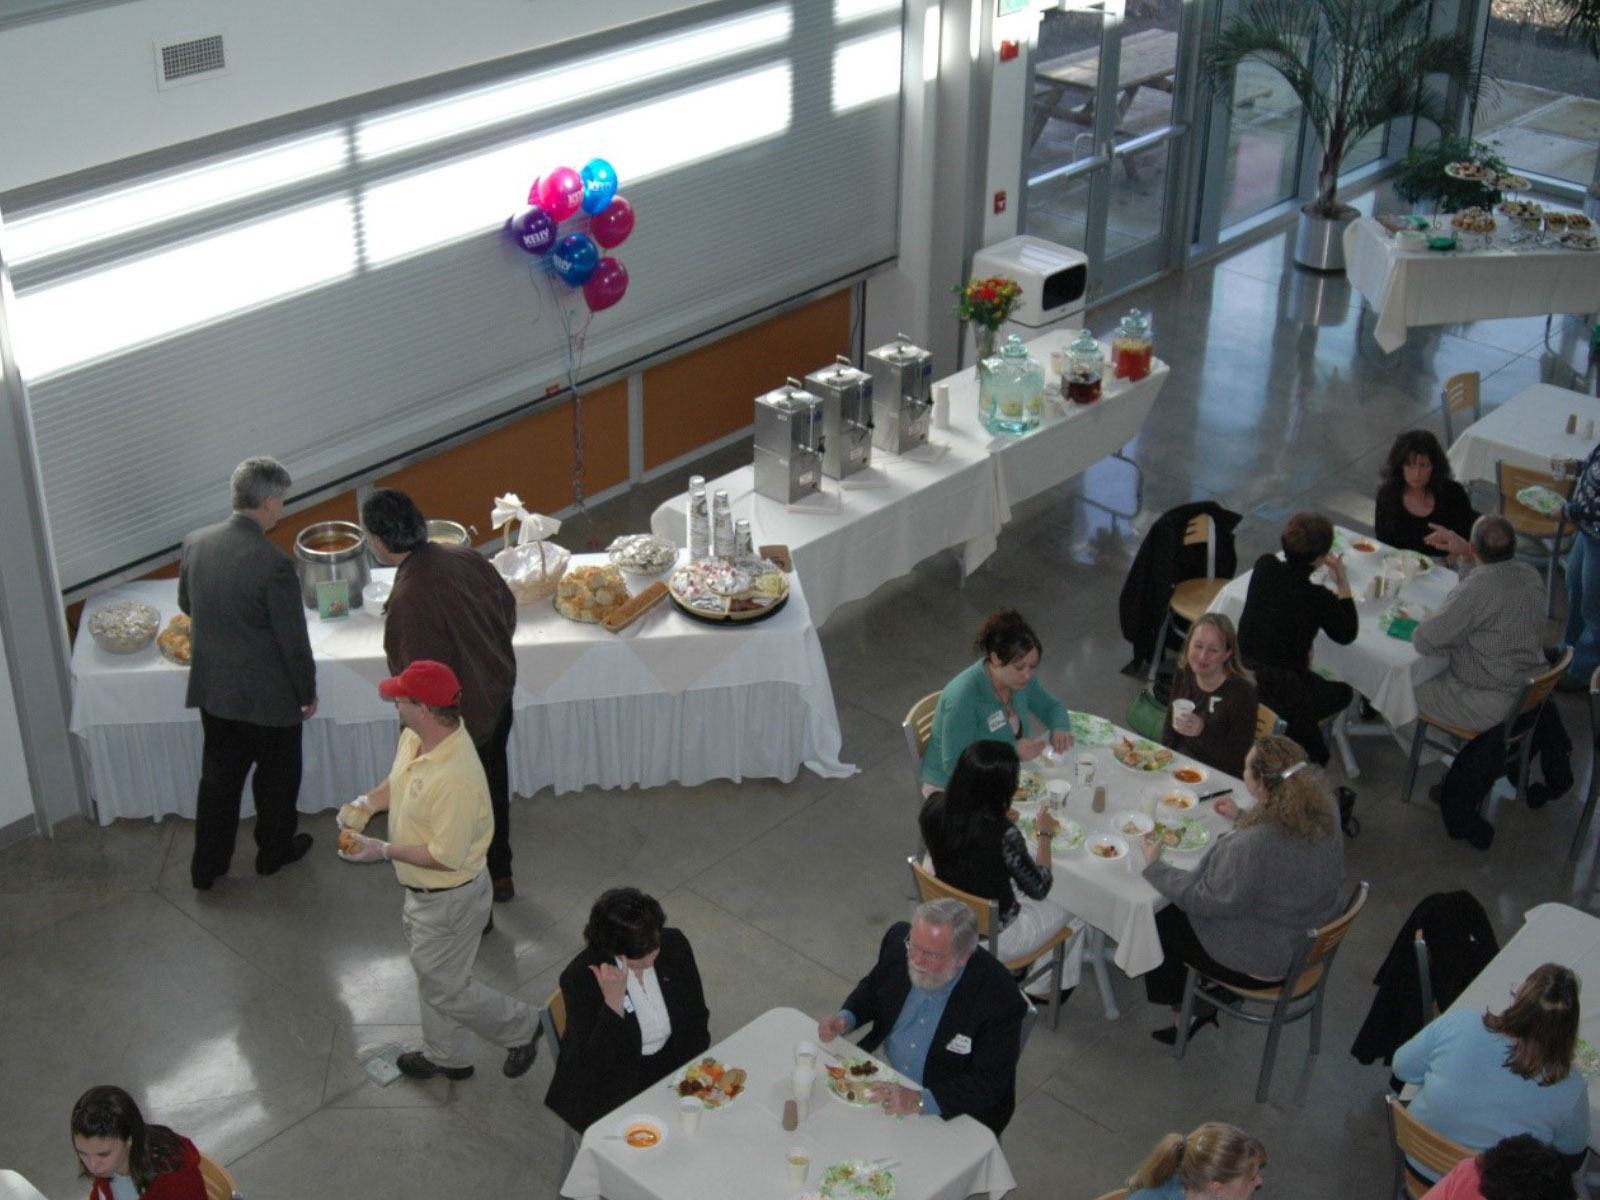 Overhead view of a catered event with various foods and drinks at the Wilsonville campus in the commons